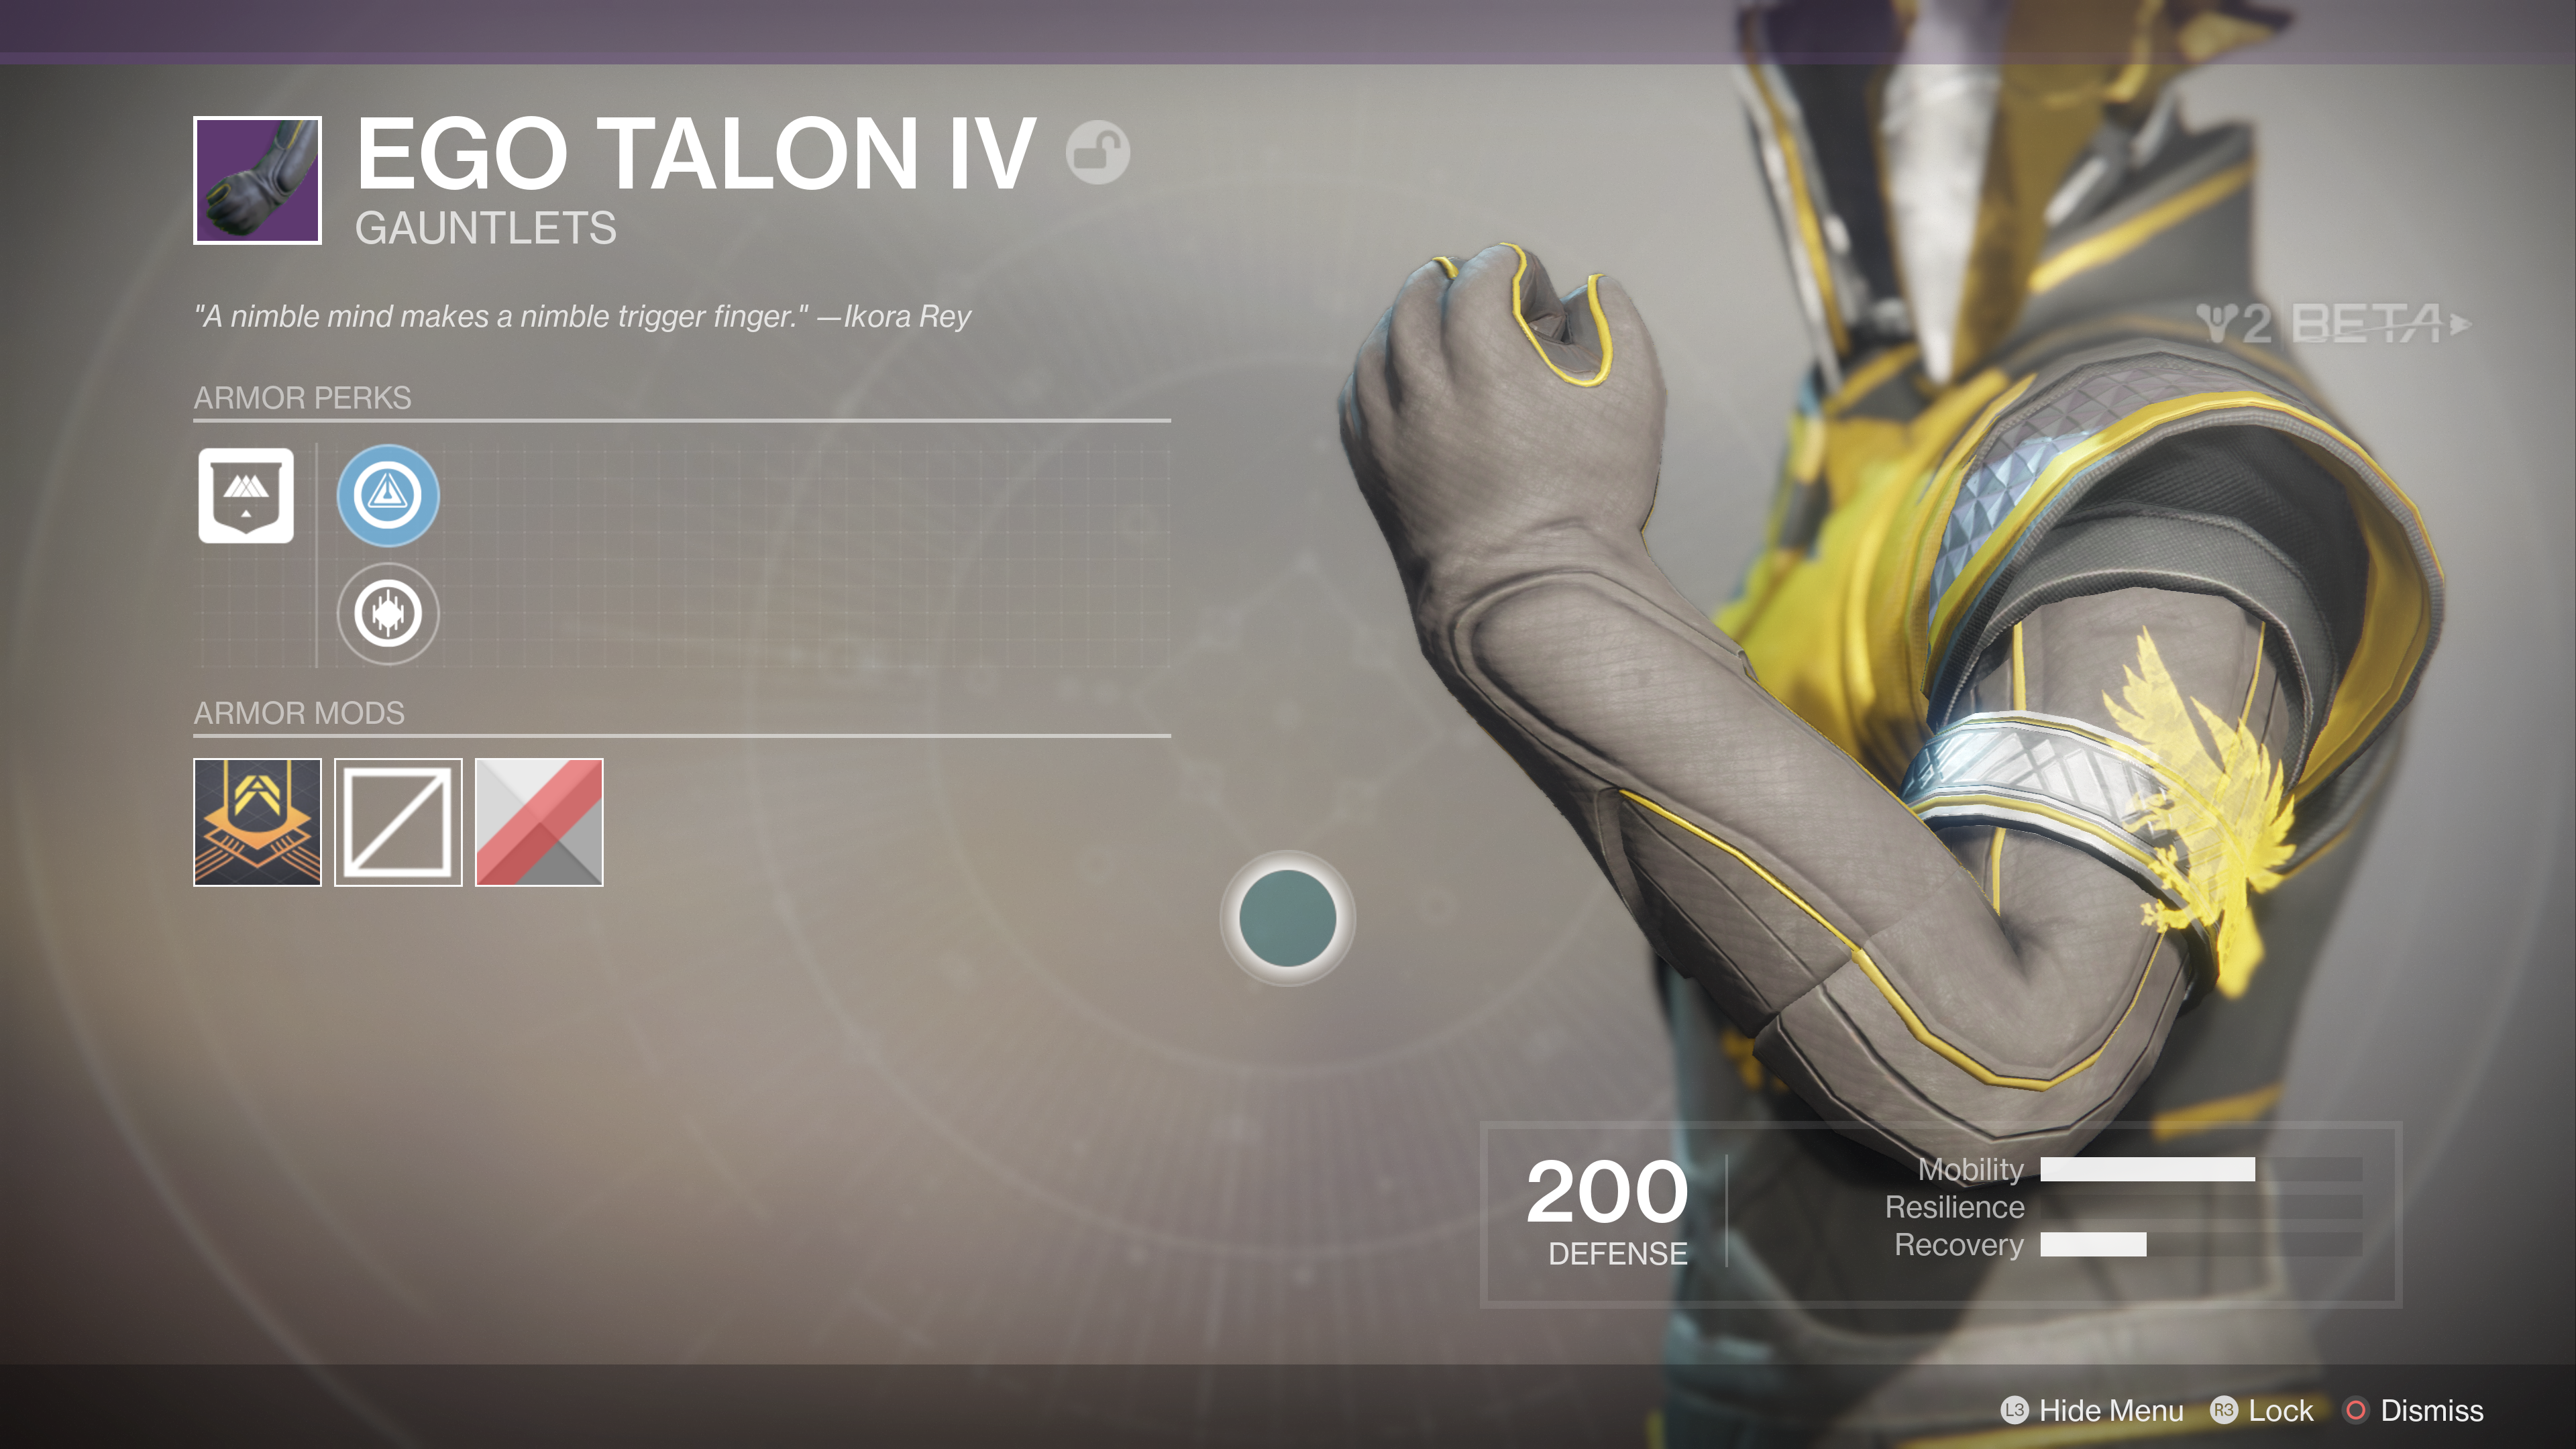 destiny 2 beta ego talon IV gauntlets